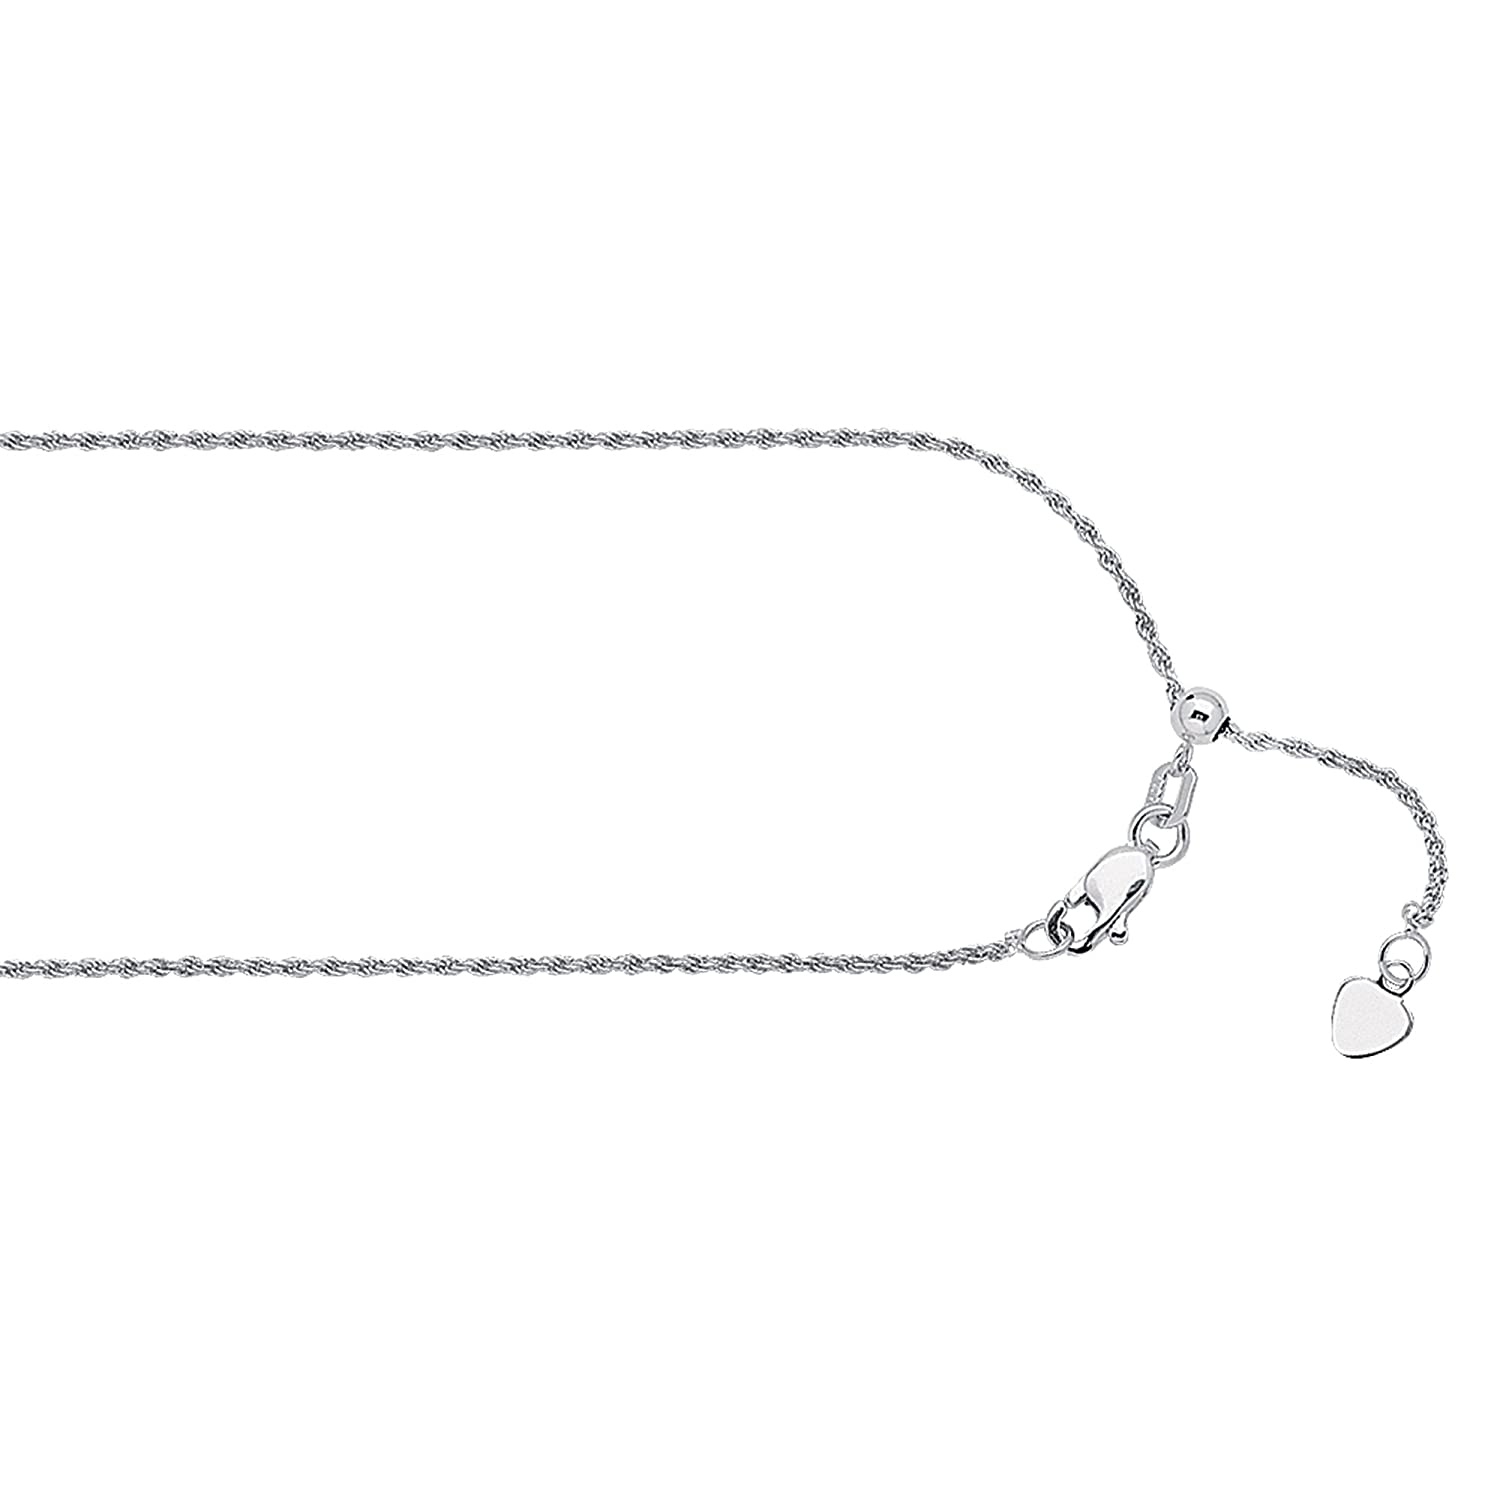 22 Inches Long Rope Chain 14Kt Gold Diamond Cut Rope Chain